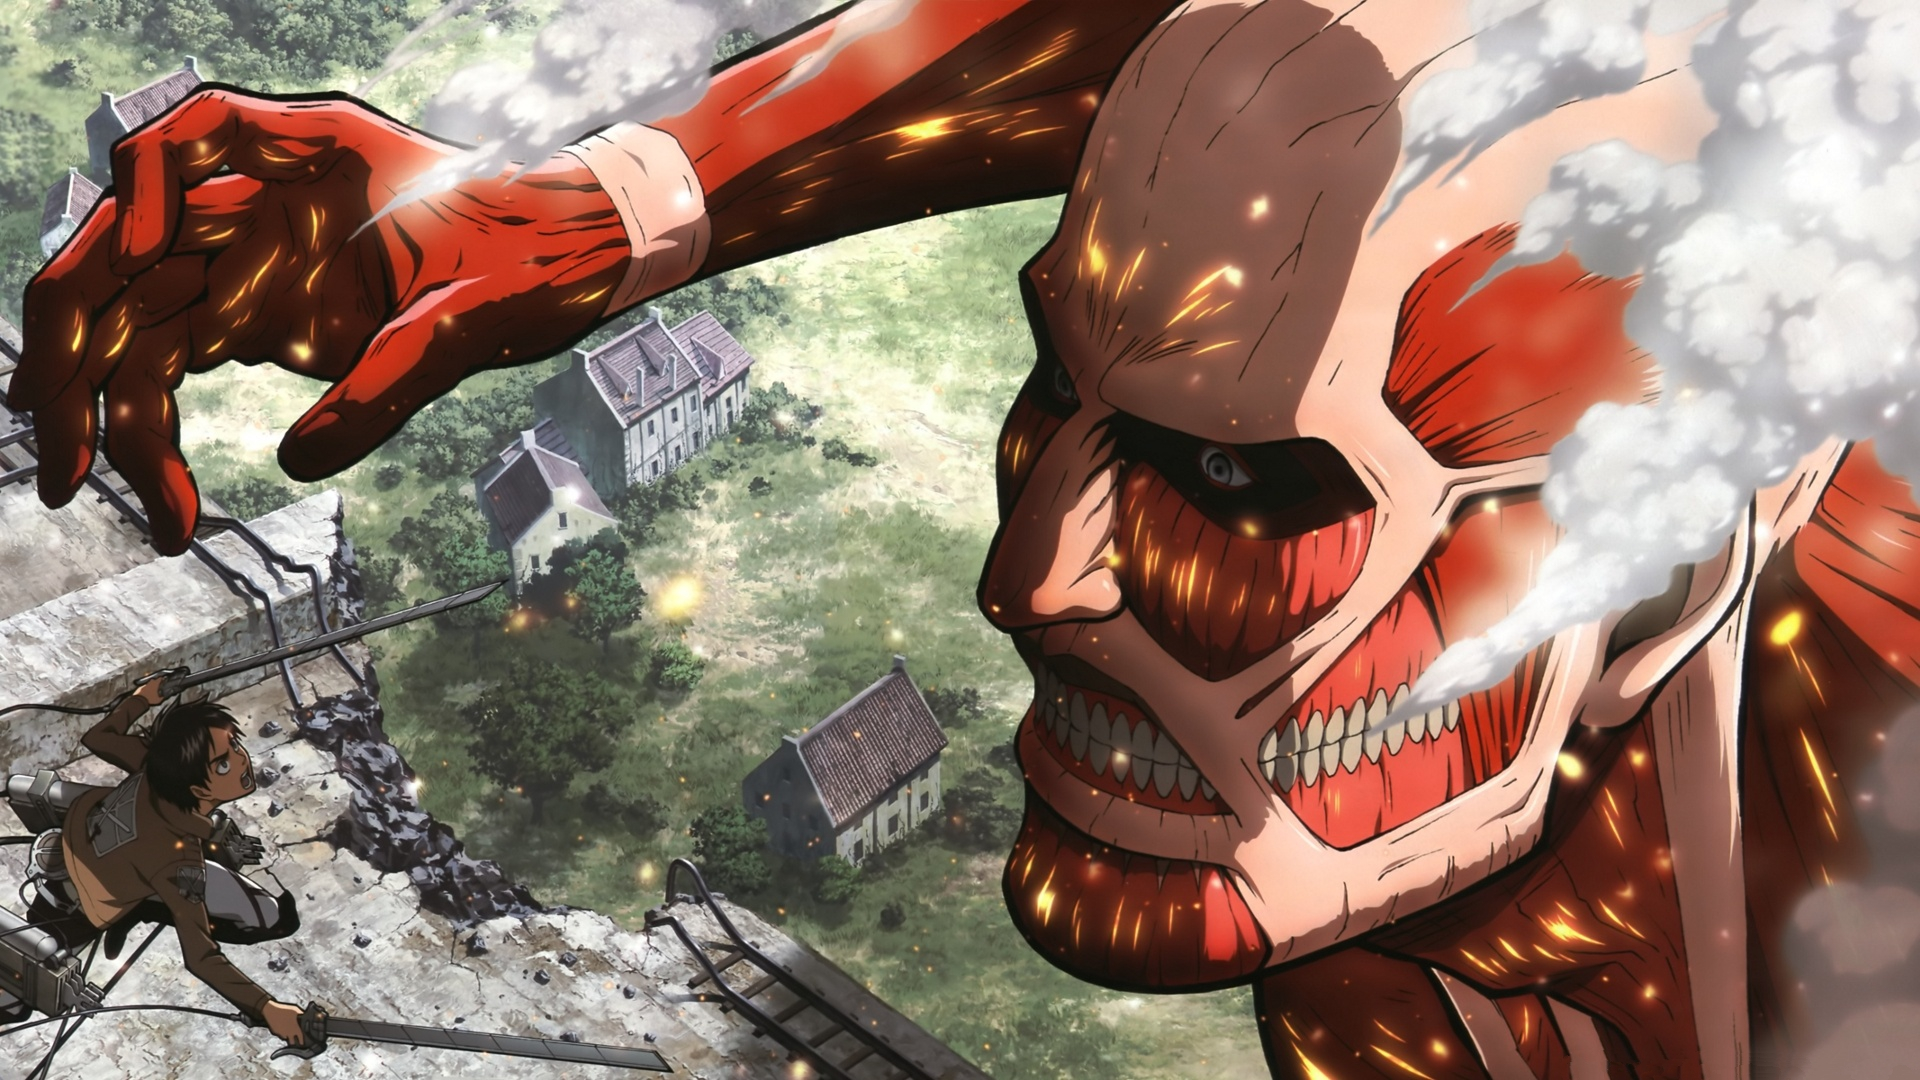 Attack On Titan Background Attack On Titan 473487 Hd Wallpaper Backgrounds Download